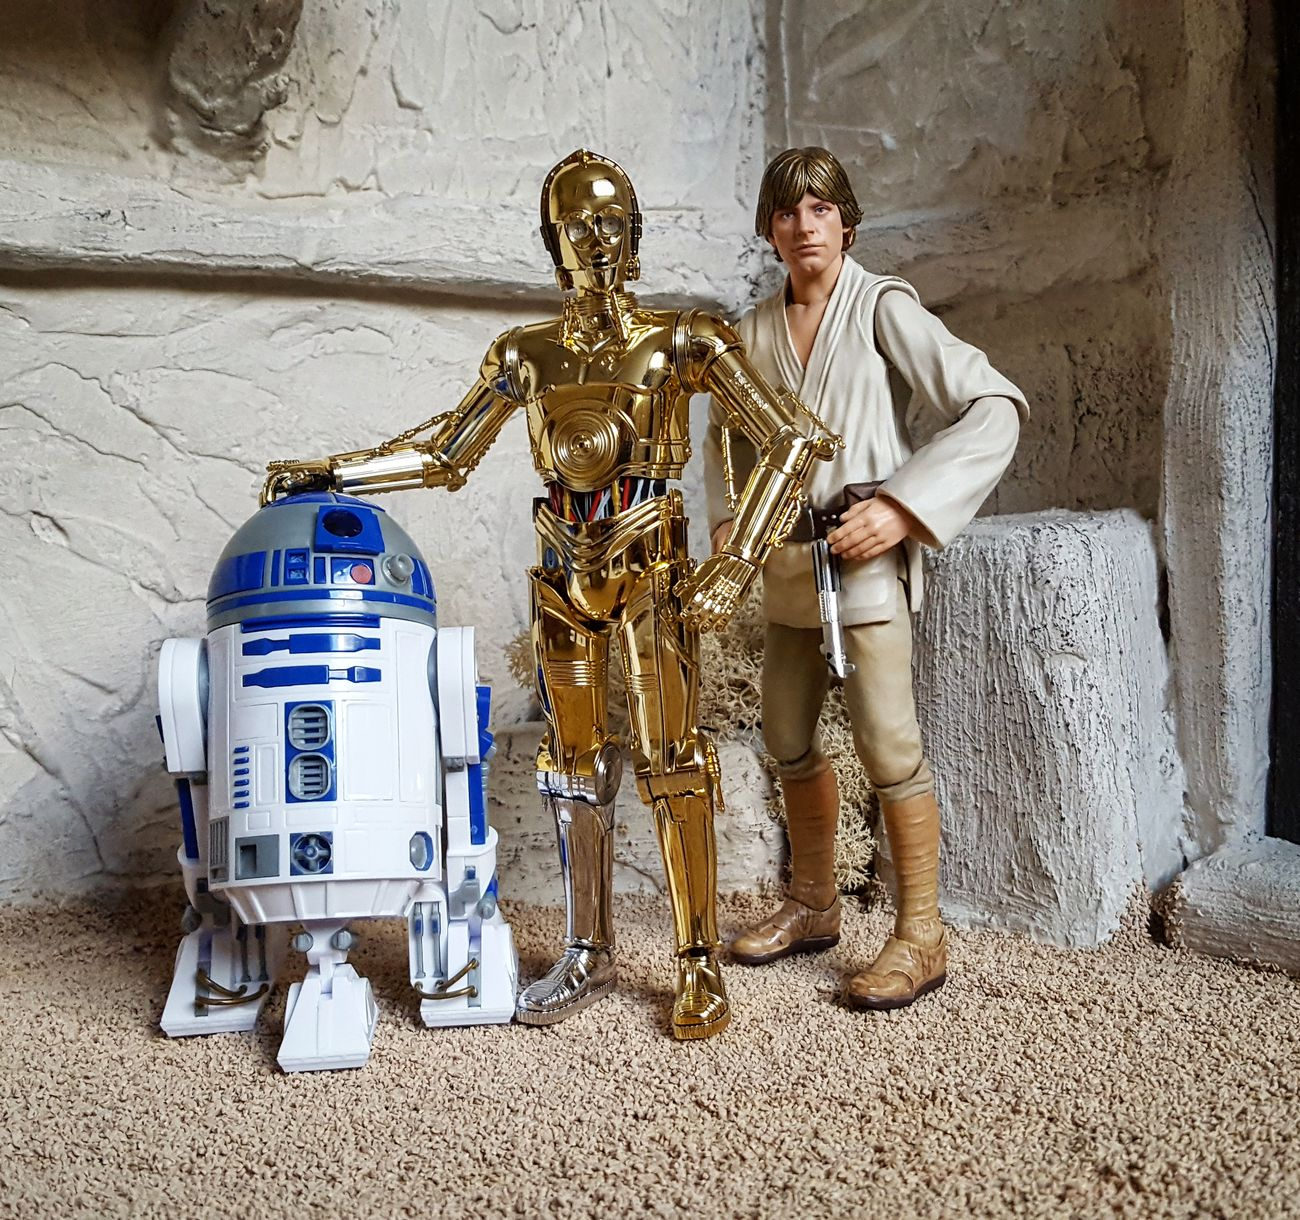 Starwars Bandaishfiguarts Lukeskywalker ToyphotographyStar Wars The Force Awakens Action Figures Bb8 Actionfigurephotography Toy Photography Obiwankenobi Toycommunity R2D2 C3po SHfiguarts Millenium Falcon Finn Chewbacca Star Wars Sandtrooper Anewhope Greedo Rogue One Starwarstoys DarthRevan